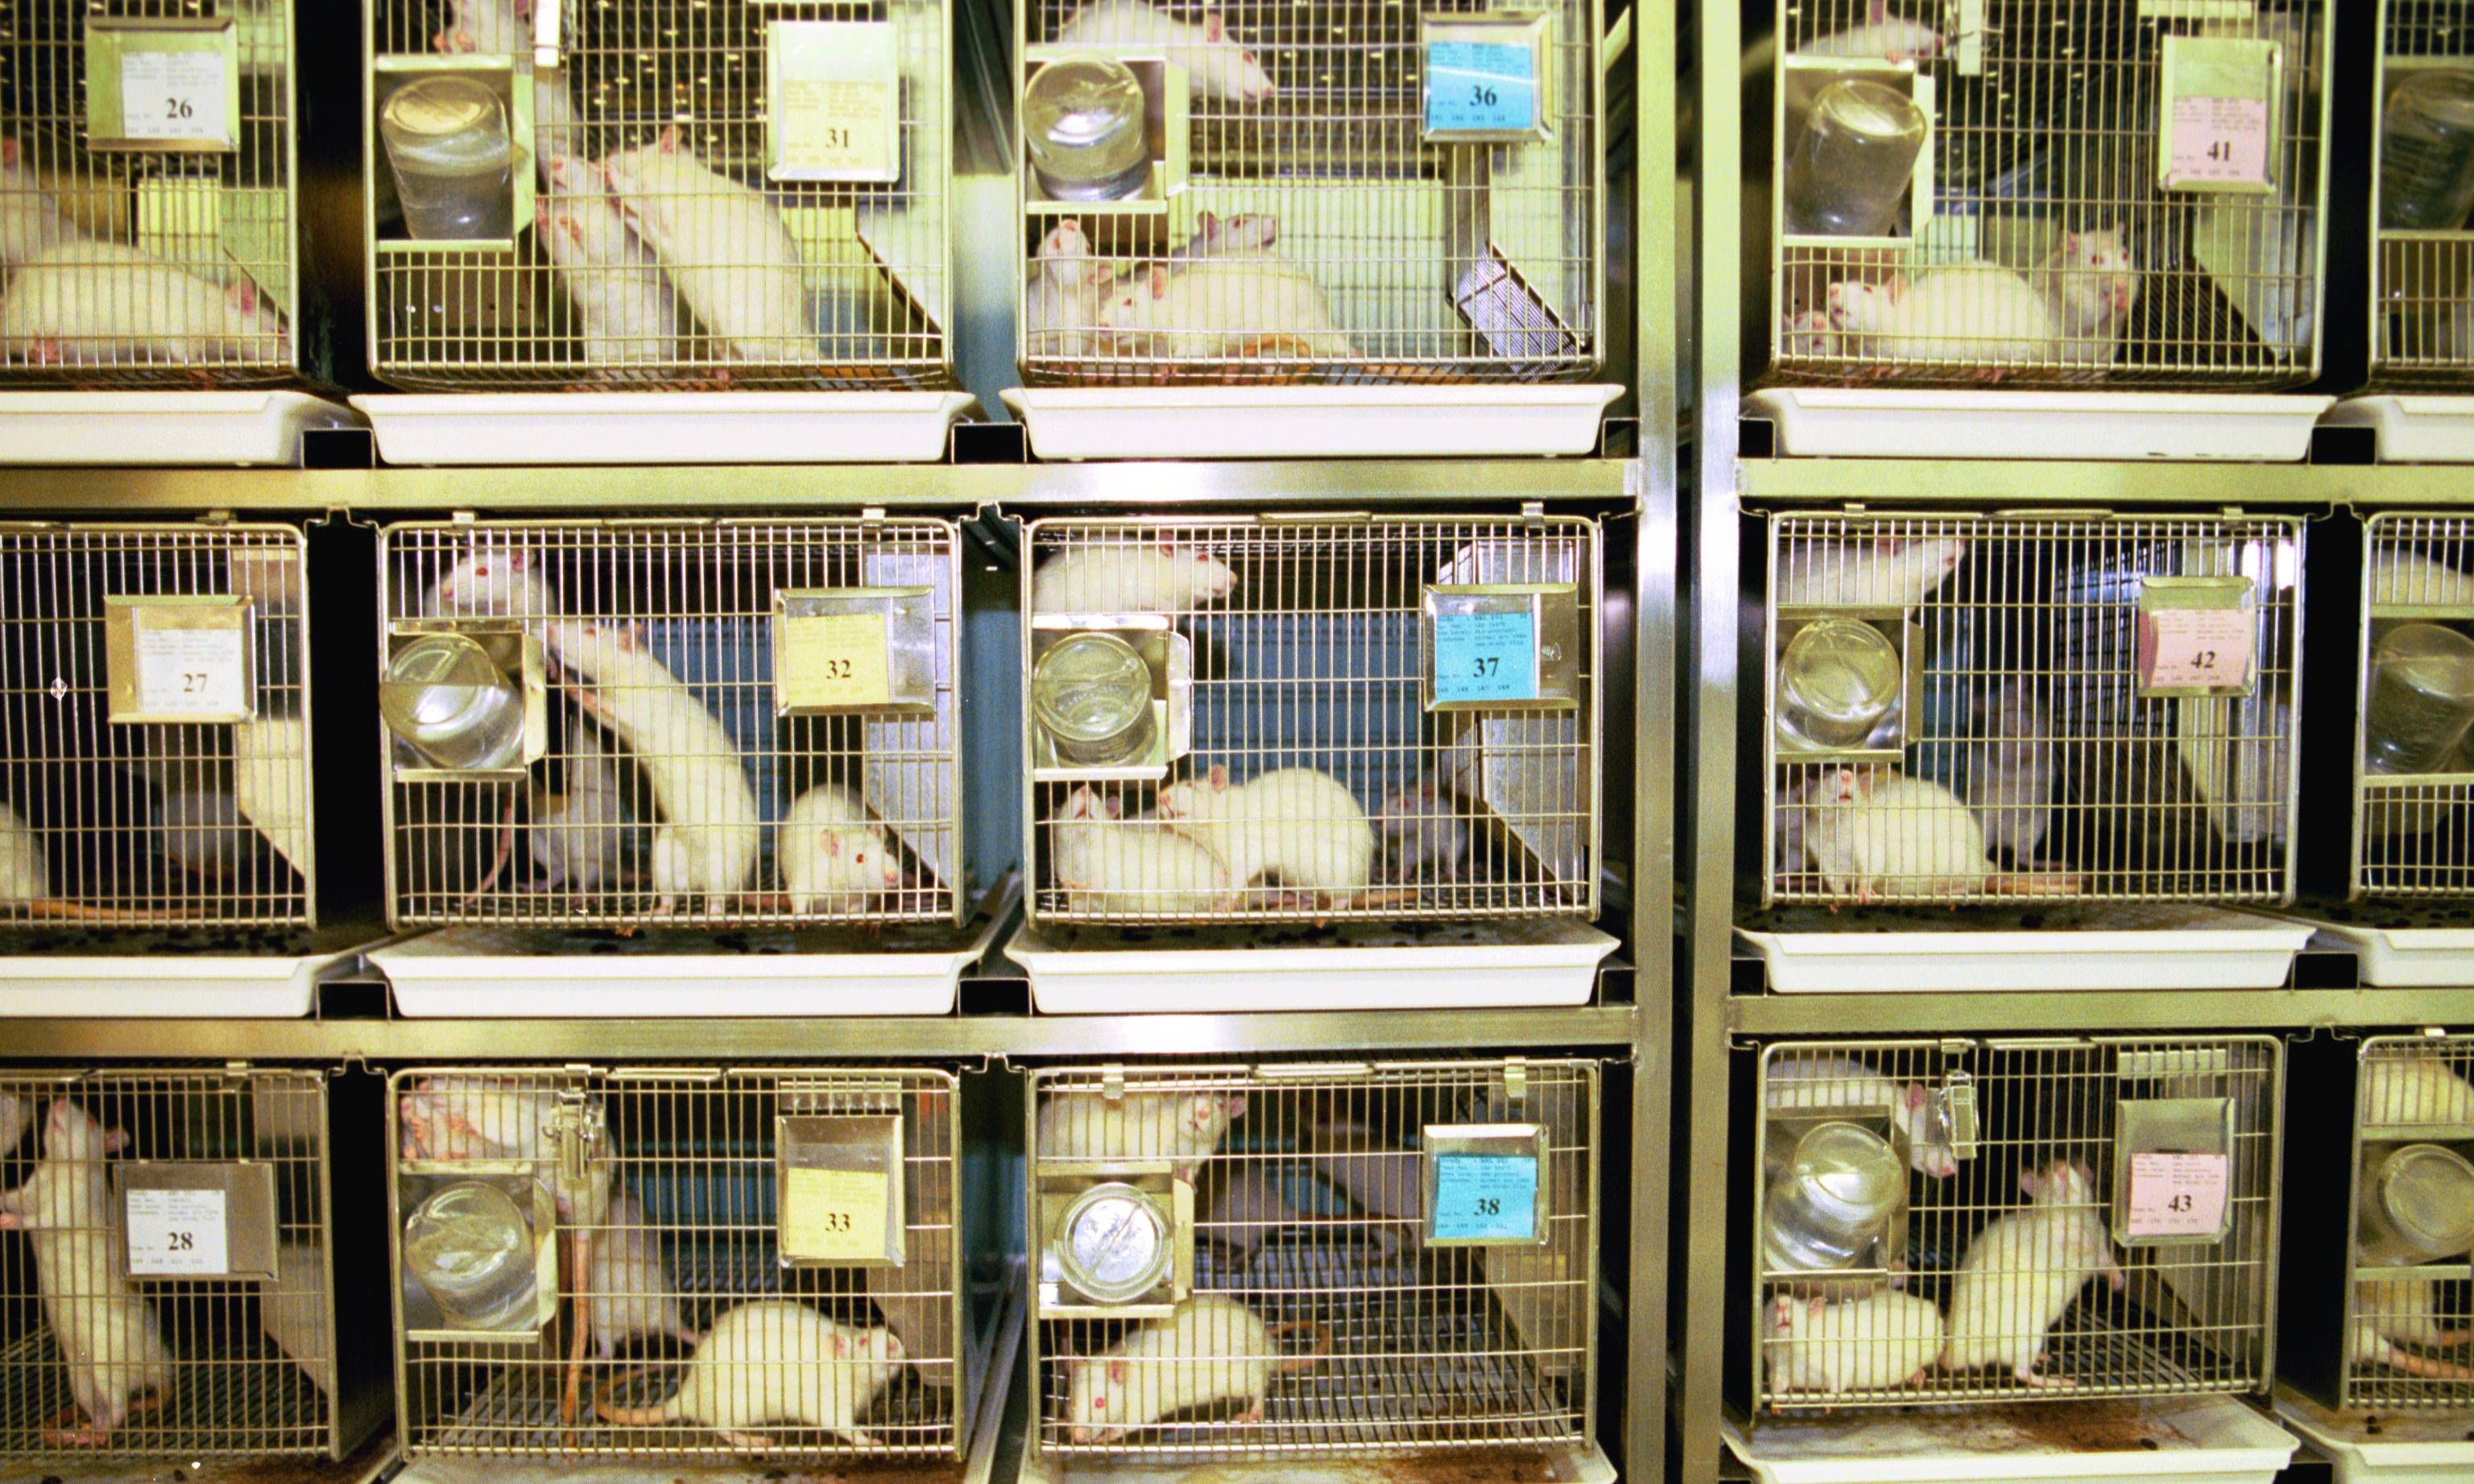 UK mouse genetics centre faces closure threatening research